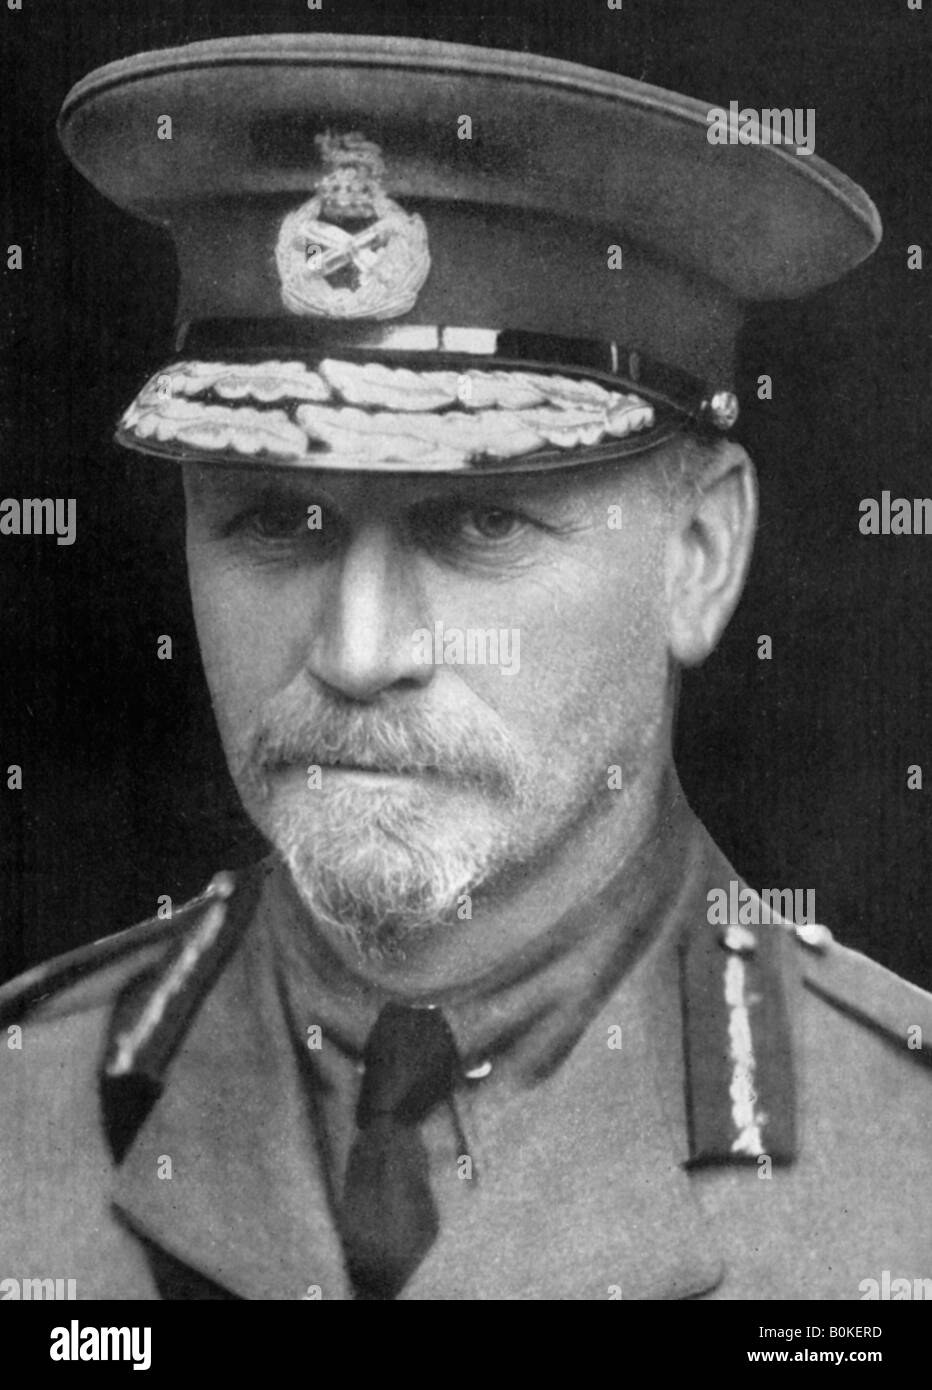 Jan Christiaan Smuts (1870-1950), South African and British Commonwealth statesman, 1926. - Stock Image